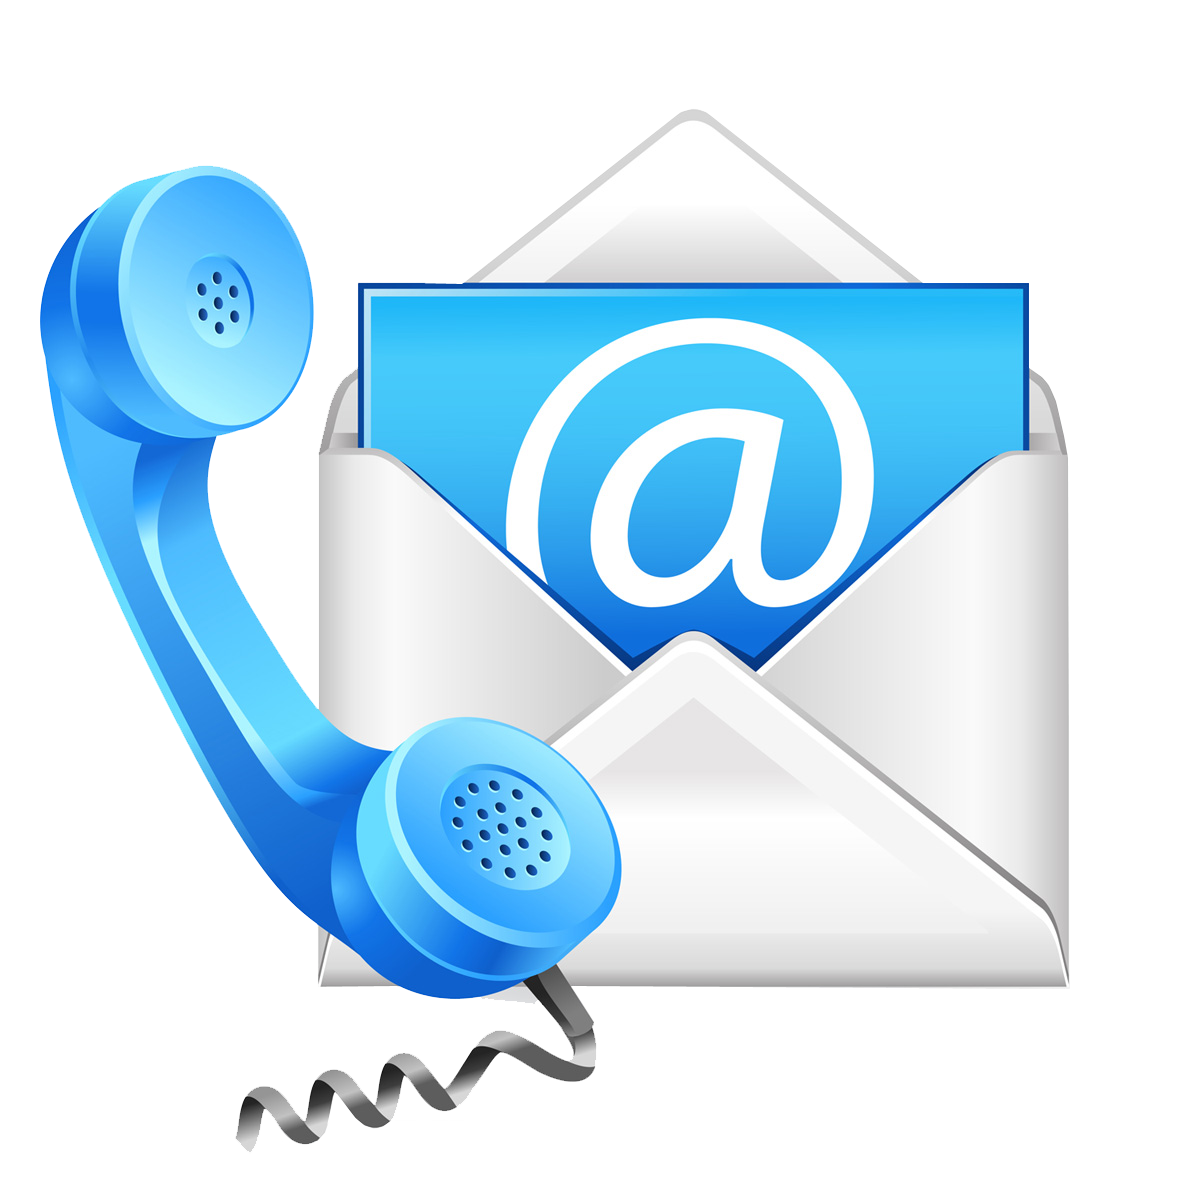 Free Svg Contact  4047